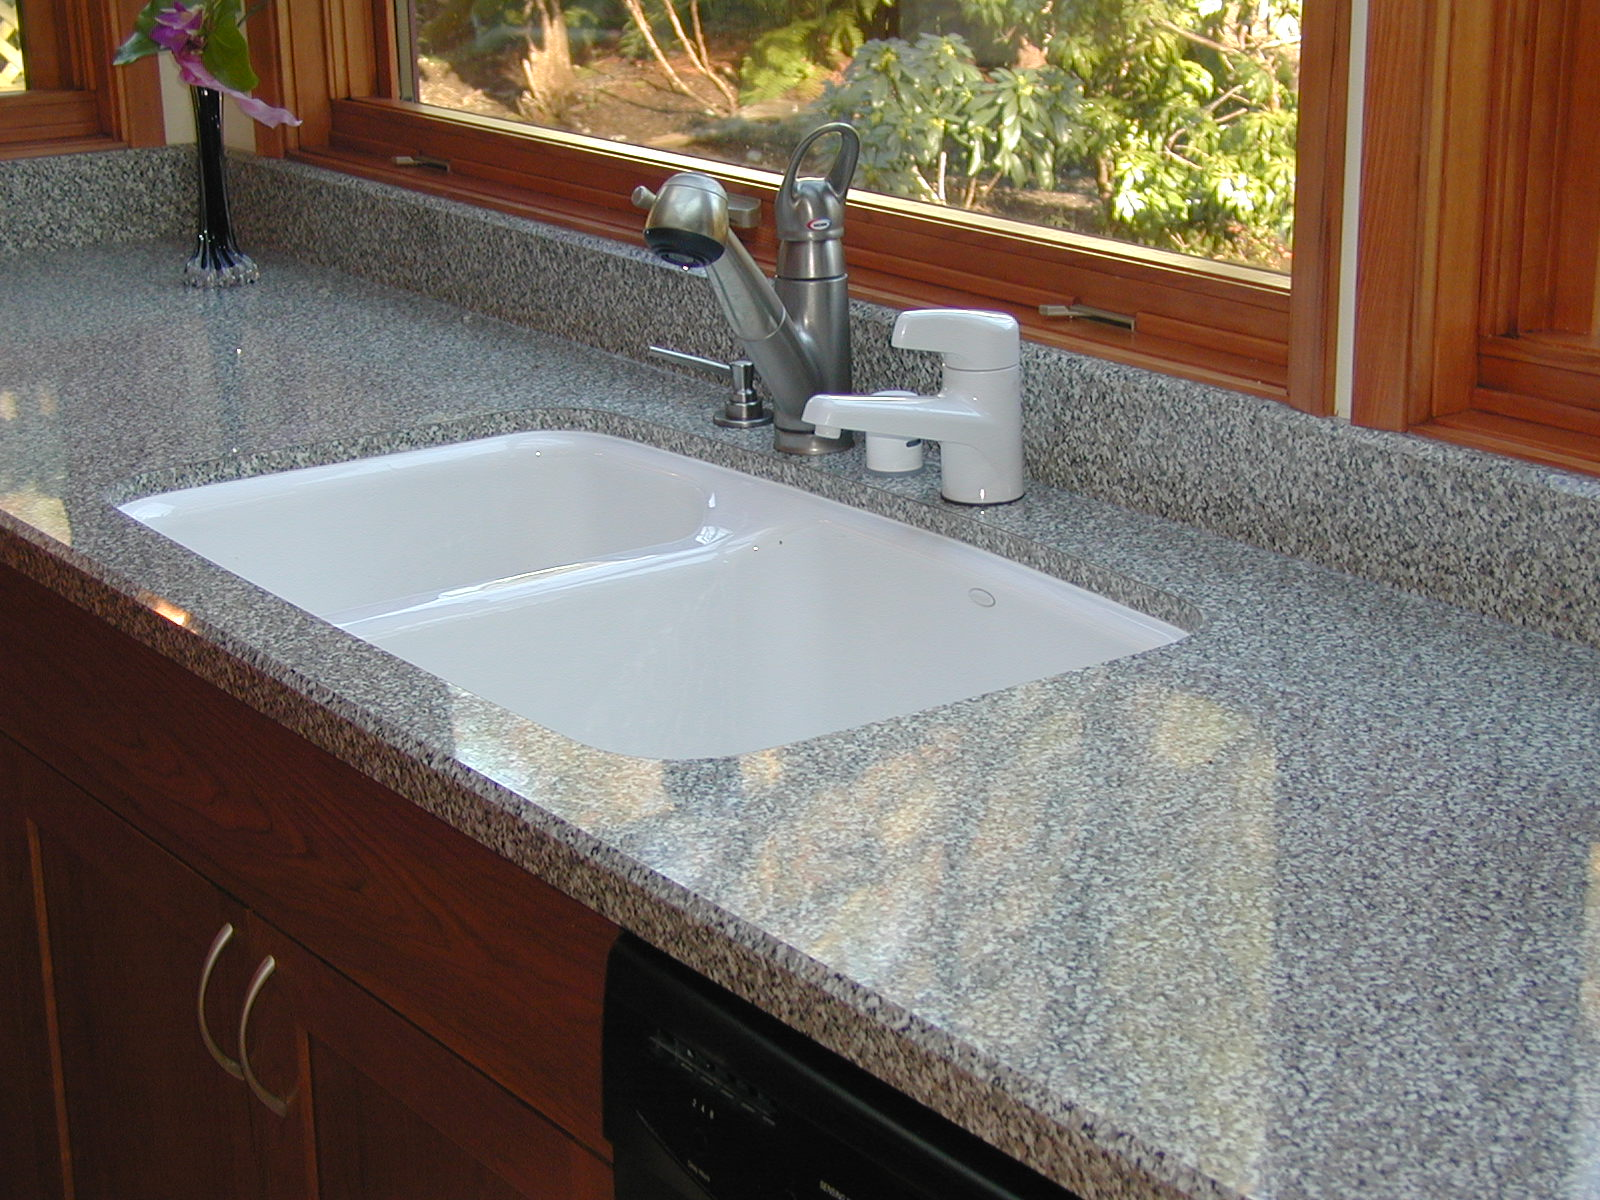 Countertop Kitchen Sink : countertop design and installation, laminate kitchen countertop ...